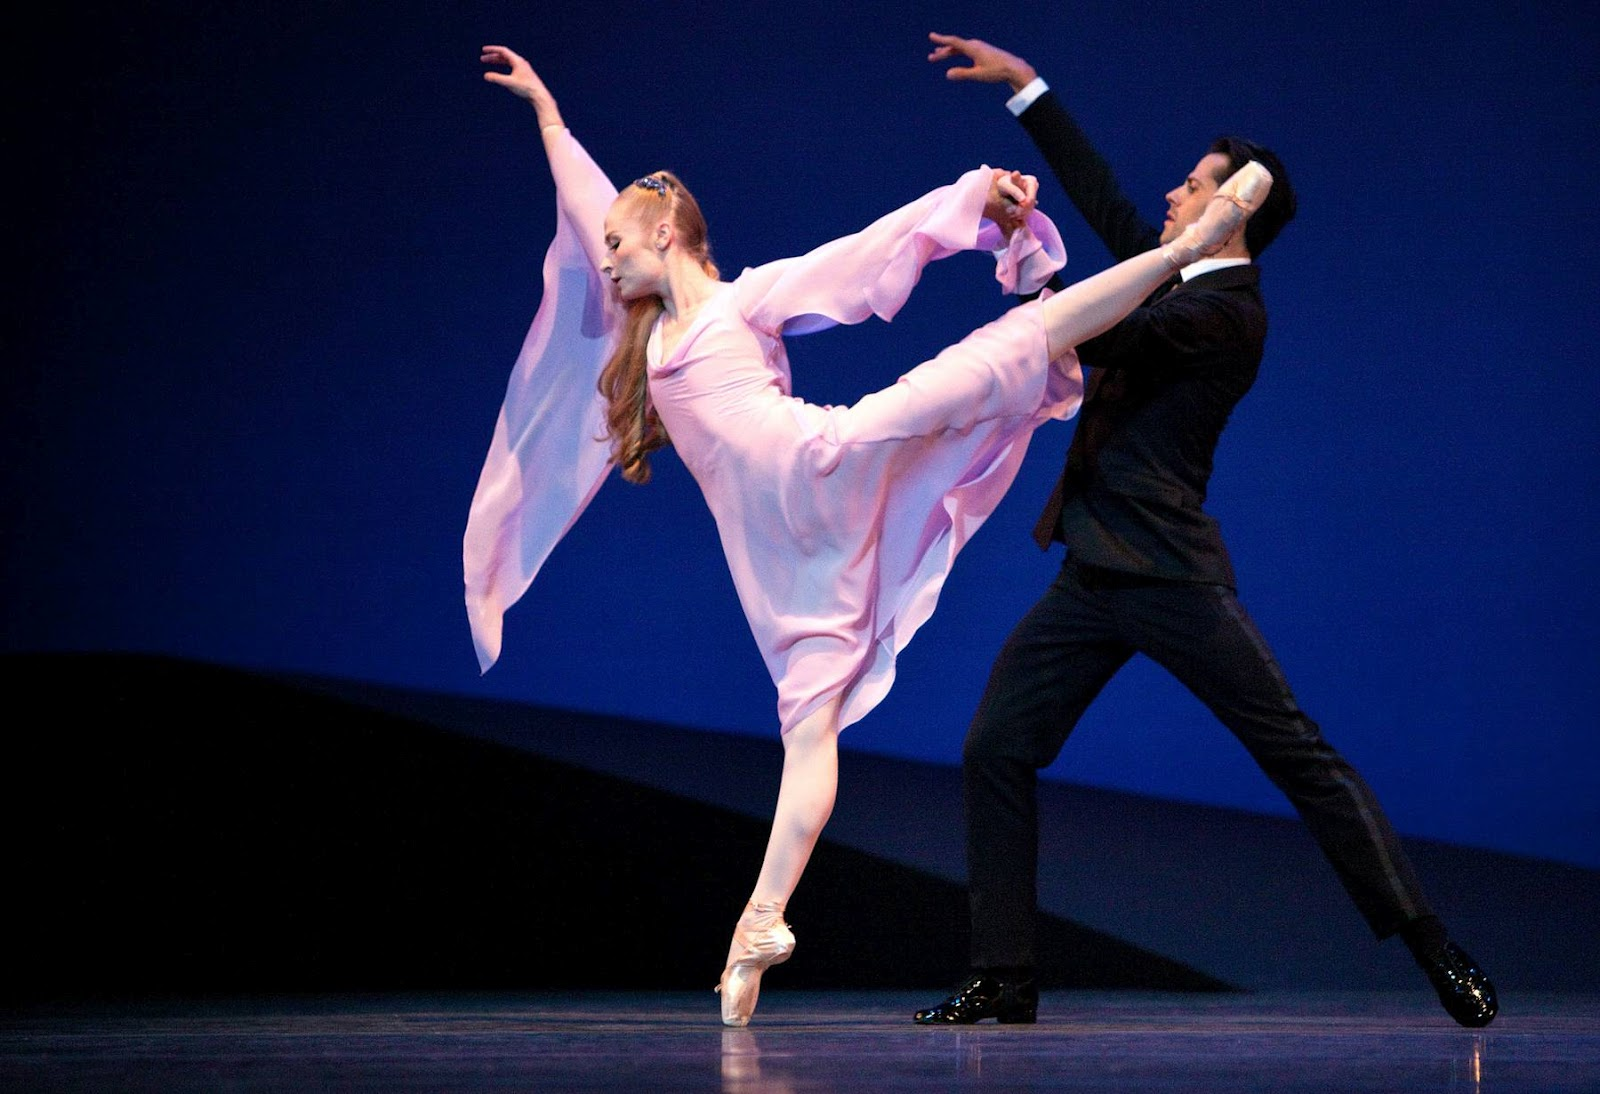 a short history of the new york city ballet With the school of american ballet and later with the new york city ballet, balanchine established himself as one of the world's leading classical choreographers.